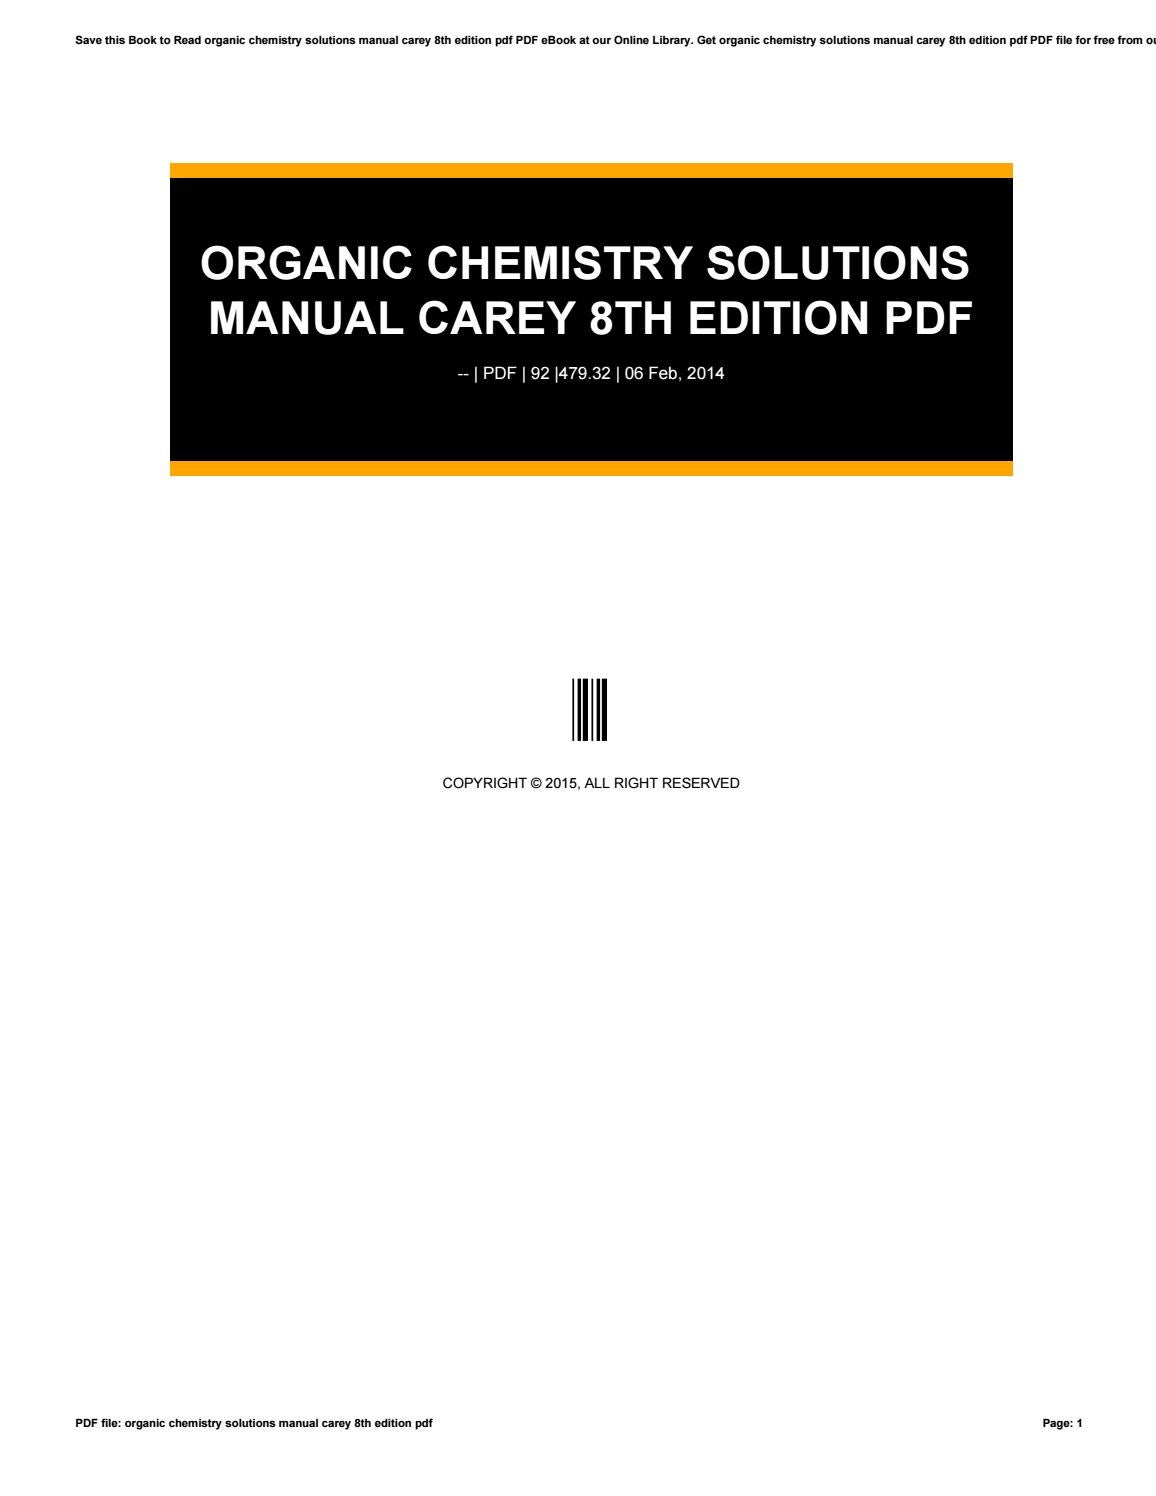 Organic Chemistry Carey 8th Edition Solution Manual